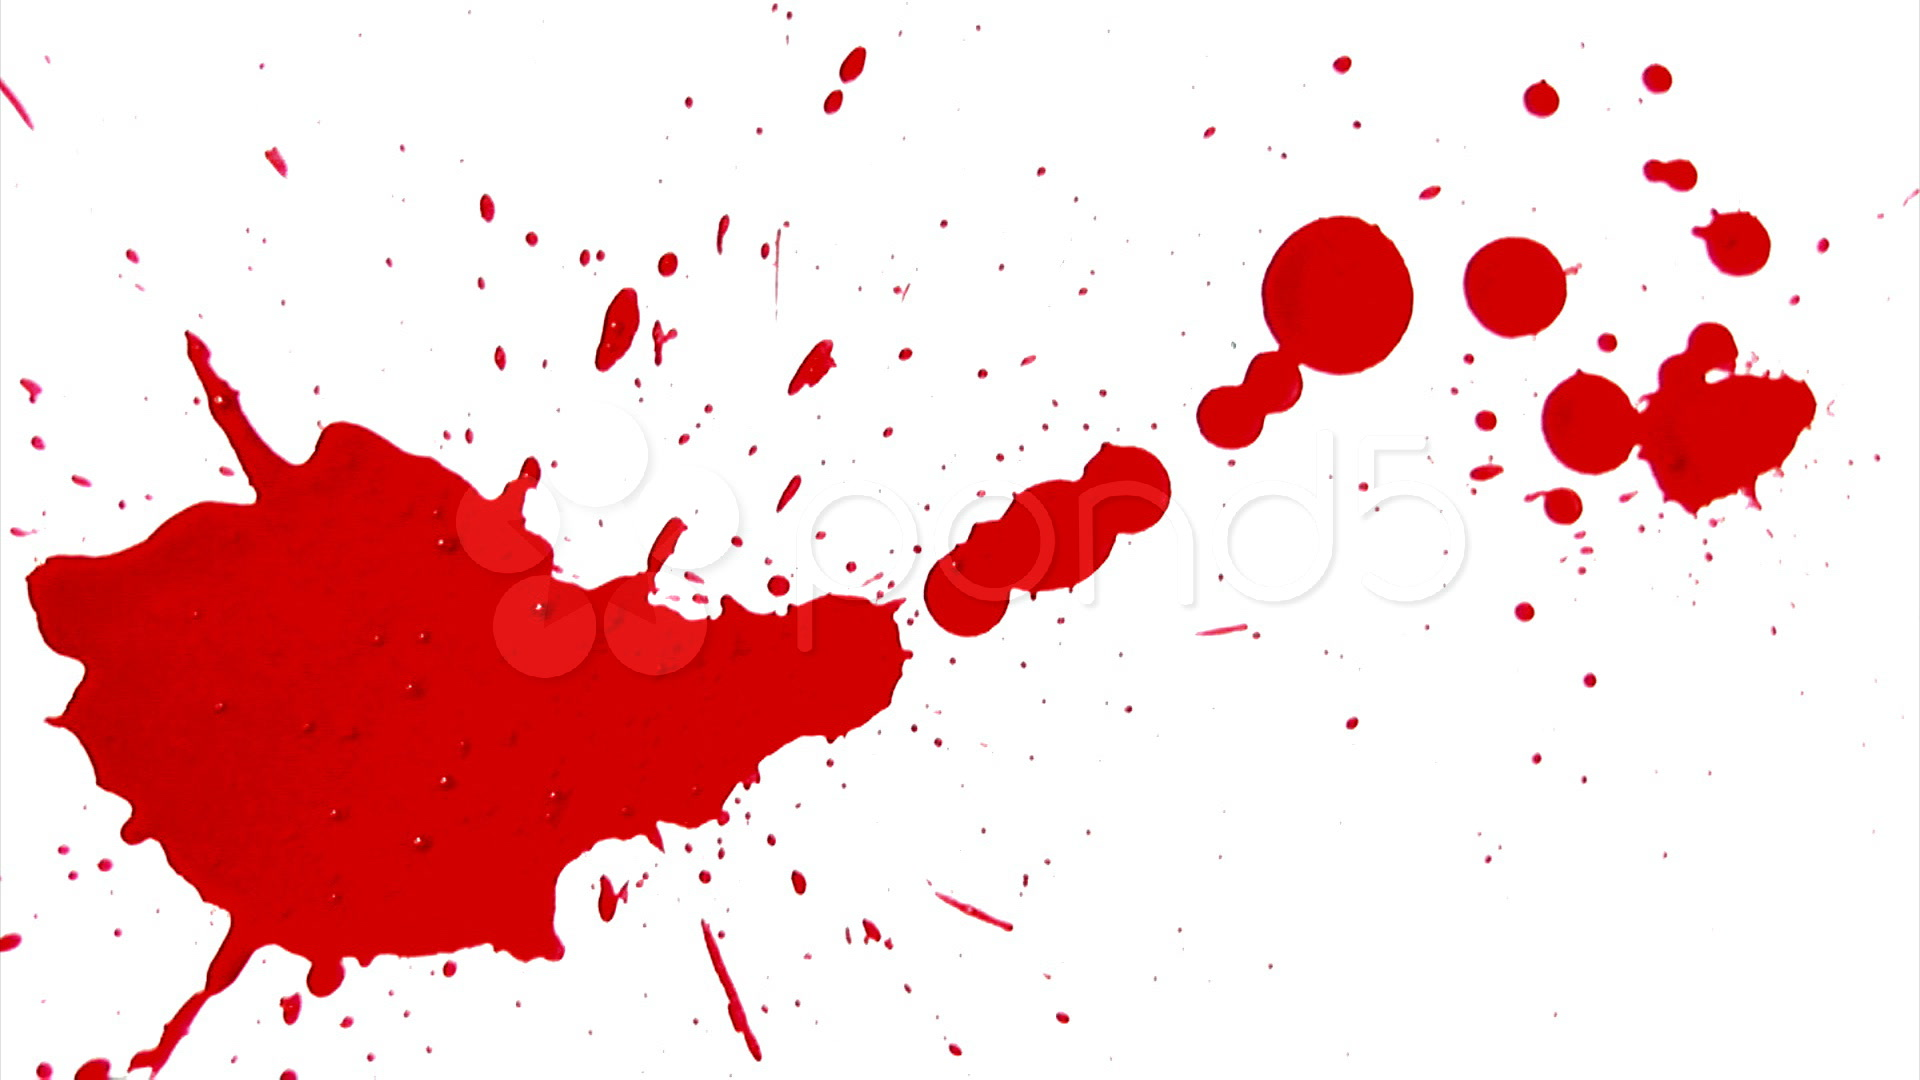 clipart images of blood - photo #18